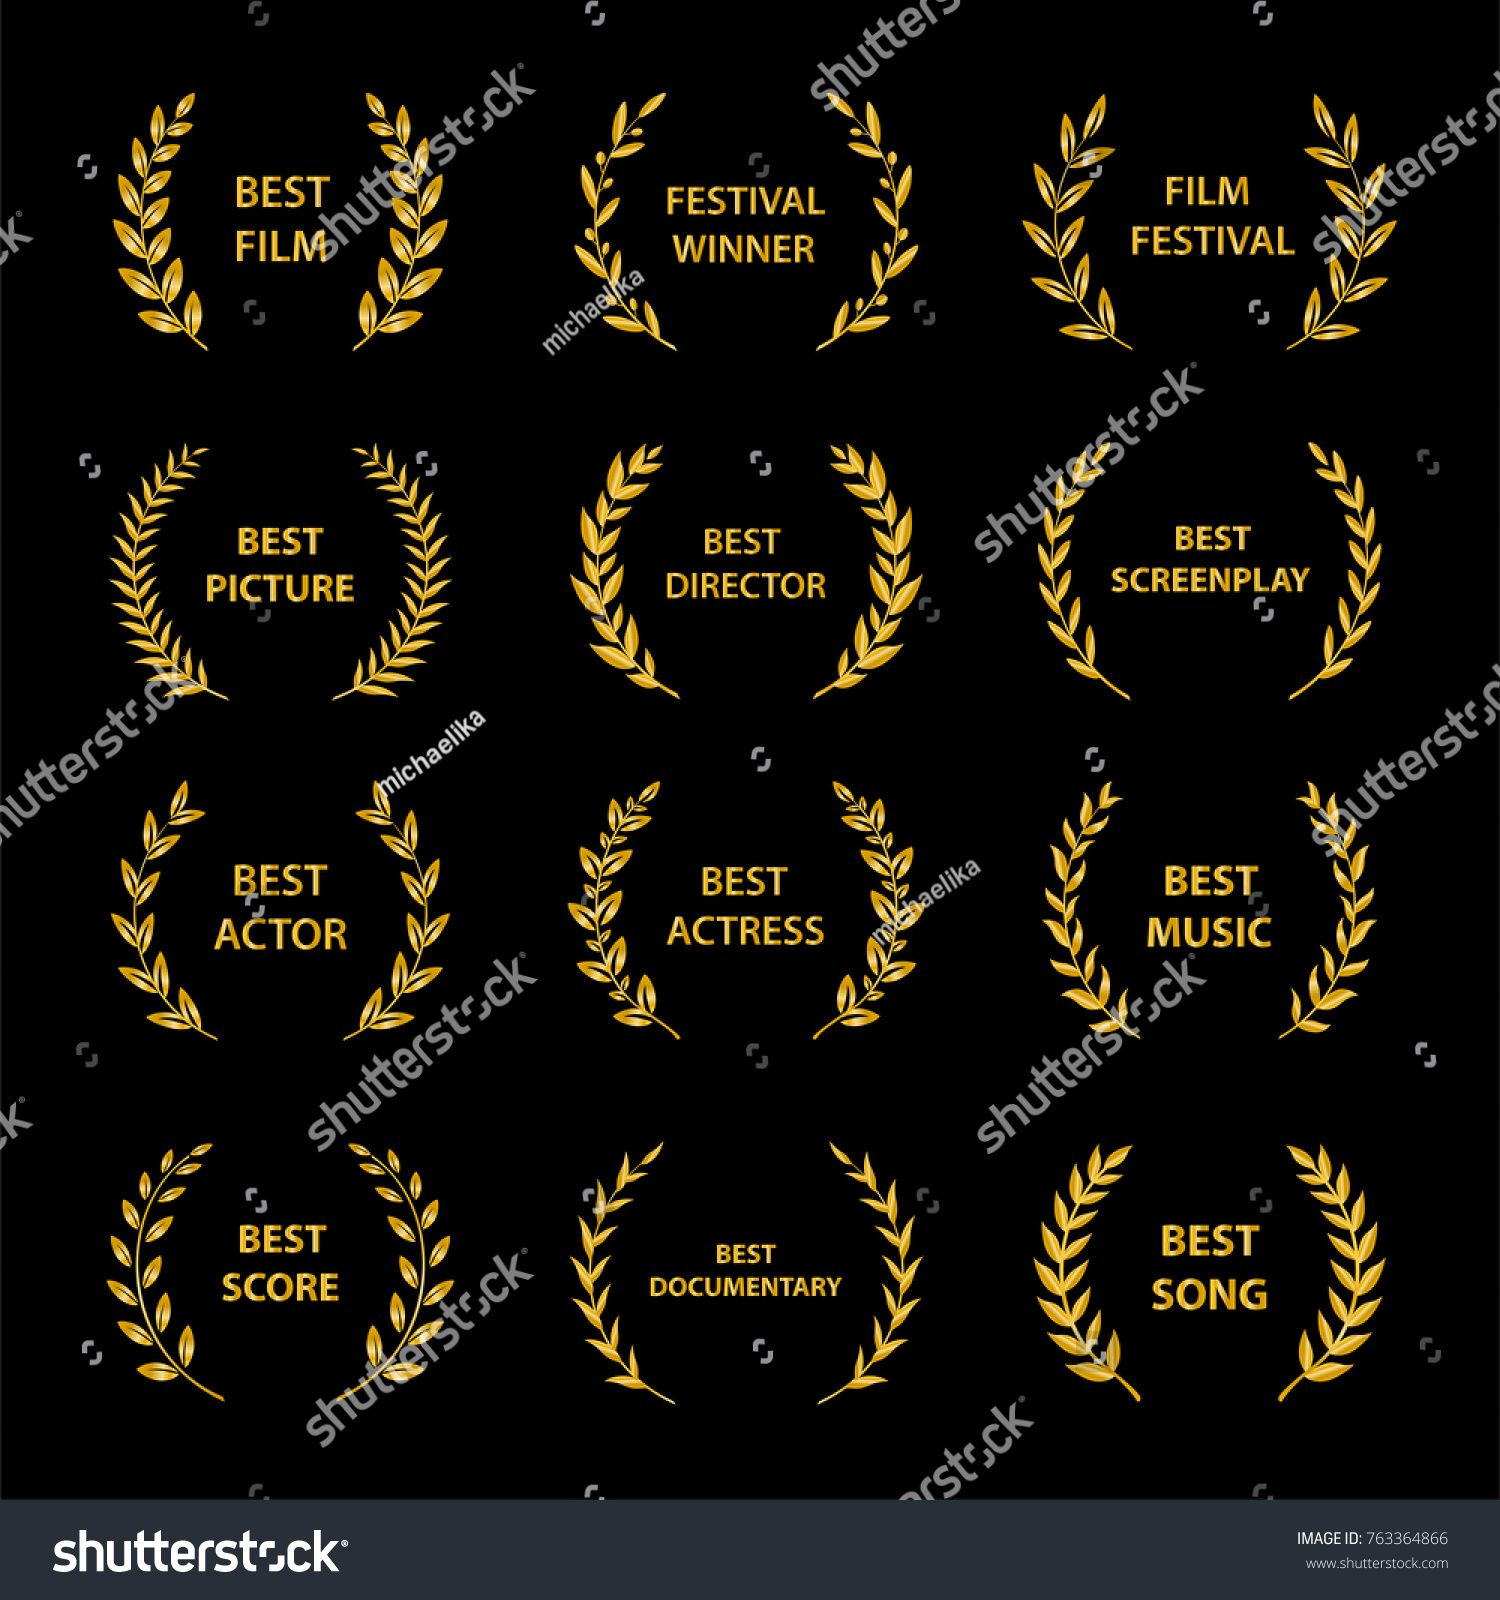 Gold Award Wreaths On Black Background Film Awards Vector Illustration Sponsored Sponsored Wreaths B Film Awards Black Backgrounds Vector Illustration